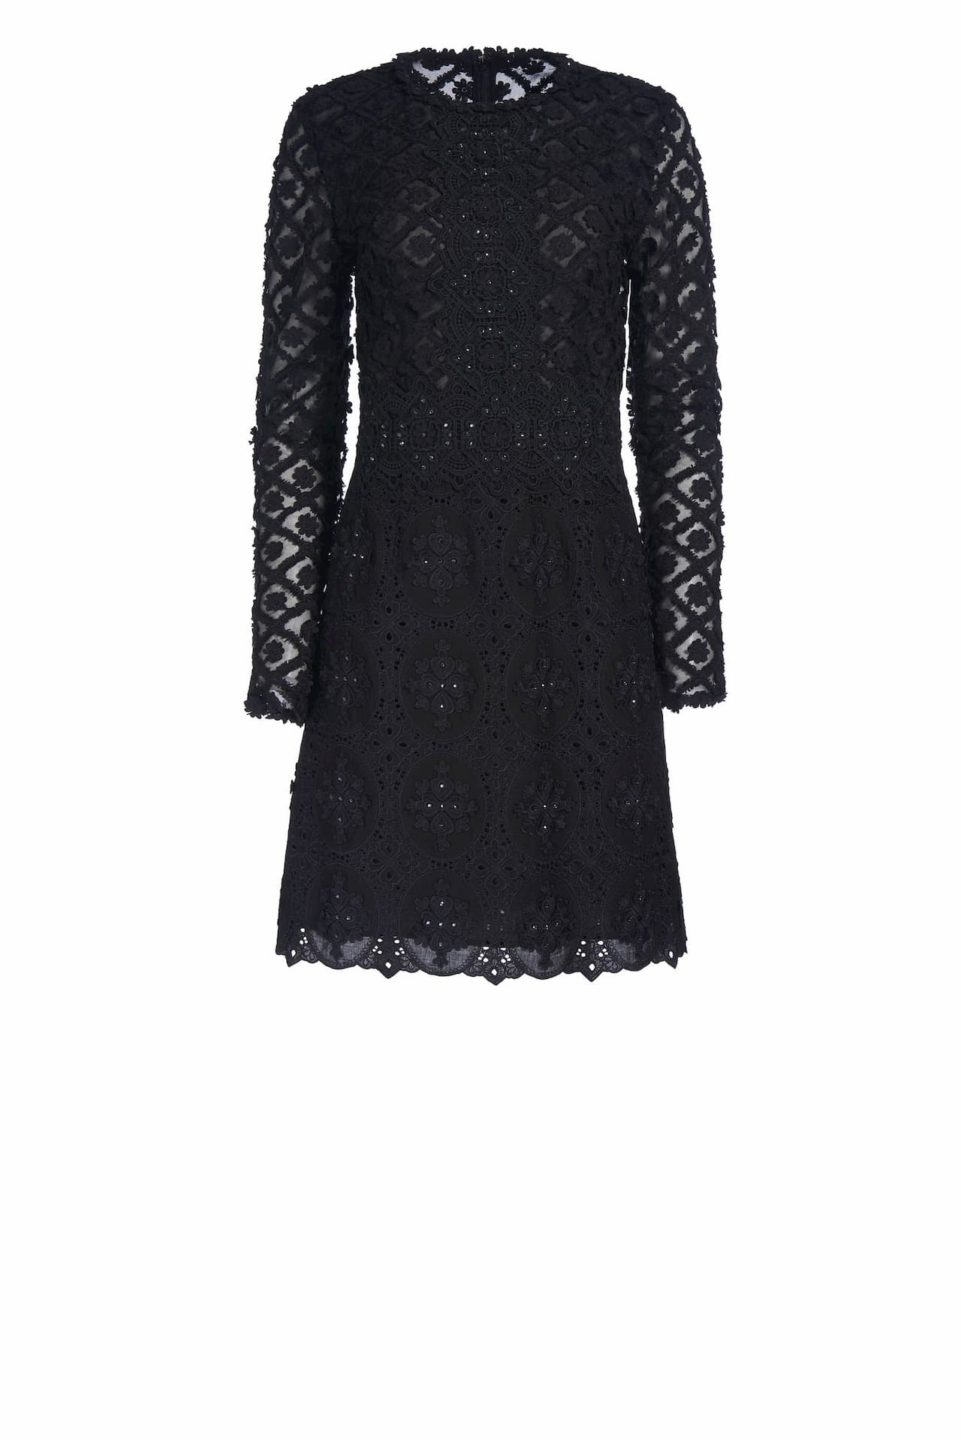 Jenalie CR1904 Black guipure lace mini dress with swarovski crystals